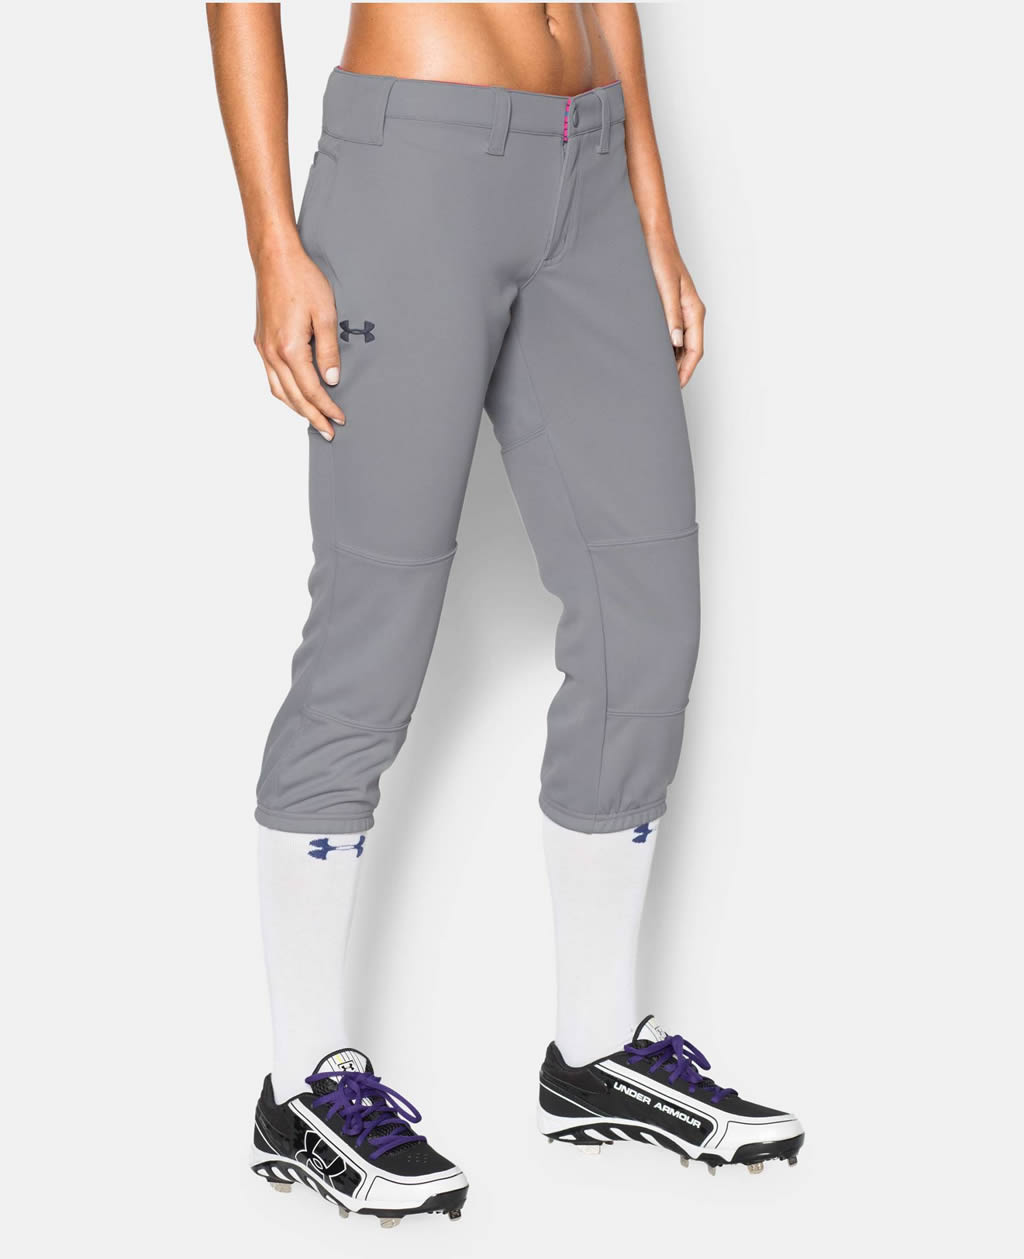 Grey Women's Strike Zone Pant By Under Armour